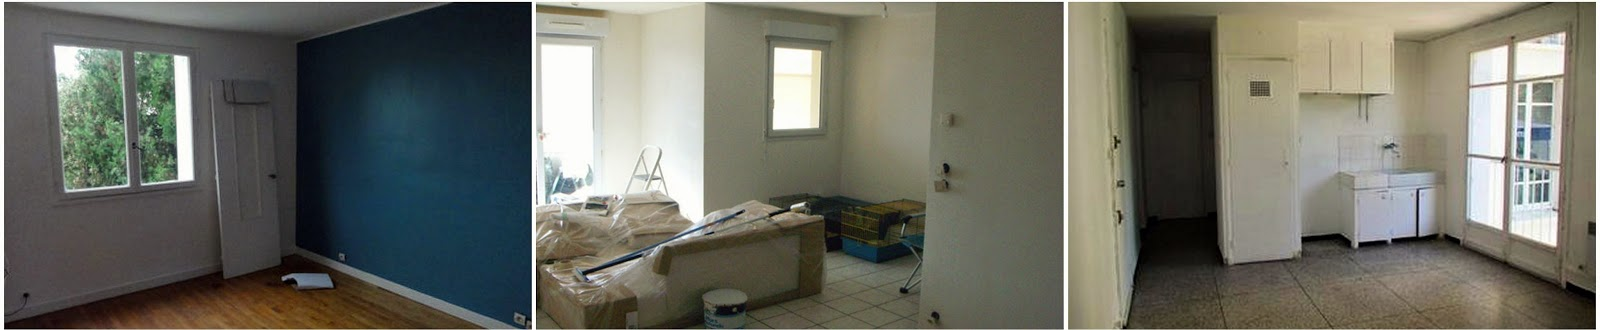 renovation peinture appartement